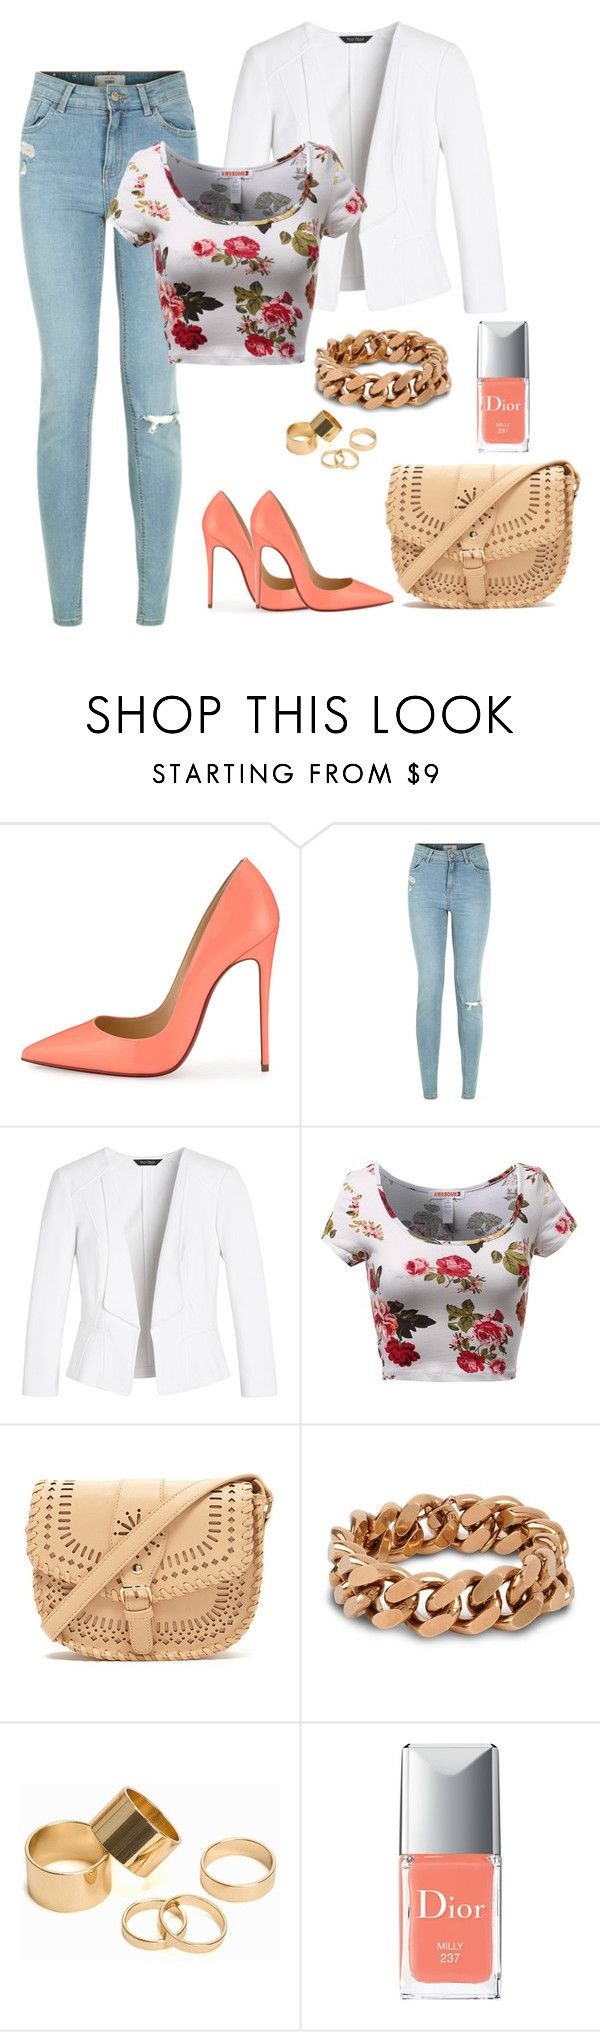 """""""..."""" by sylver-fang on Polyvore featuring Christian Louboutin, White House Black Market, Forever 21, STELLA McCARTNEY, Pieces, Christian Dior, women's clothing, women, female and woman"""